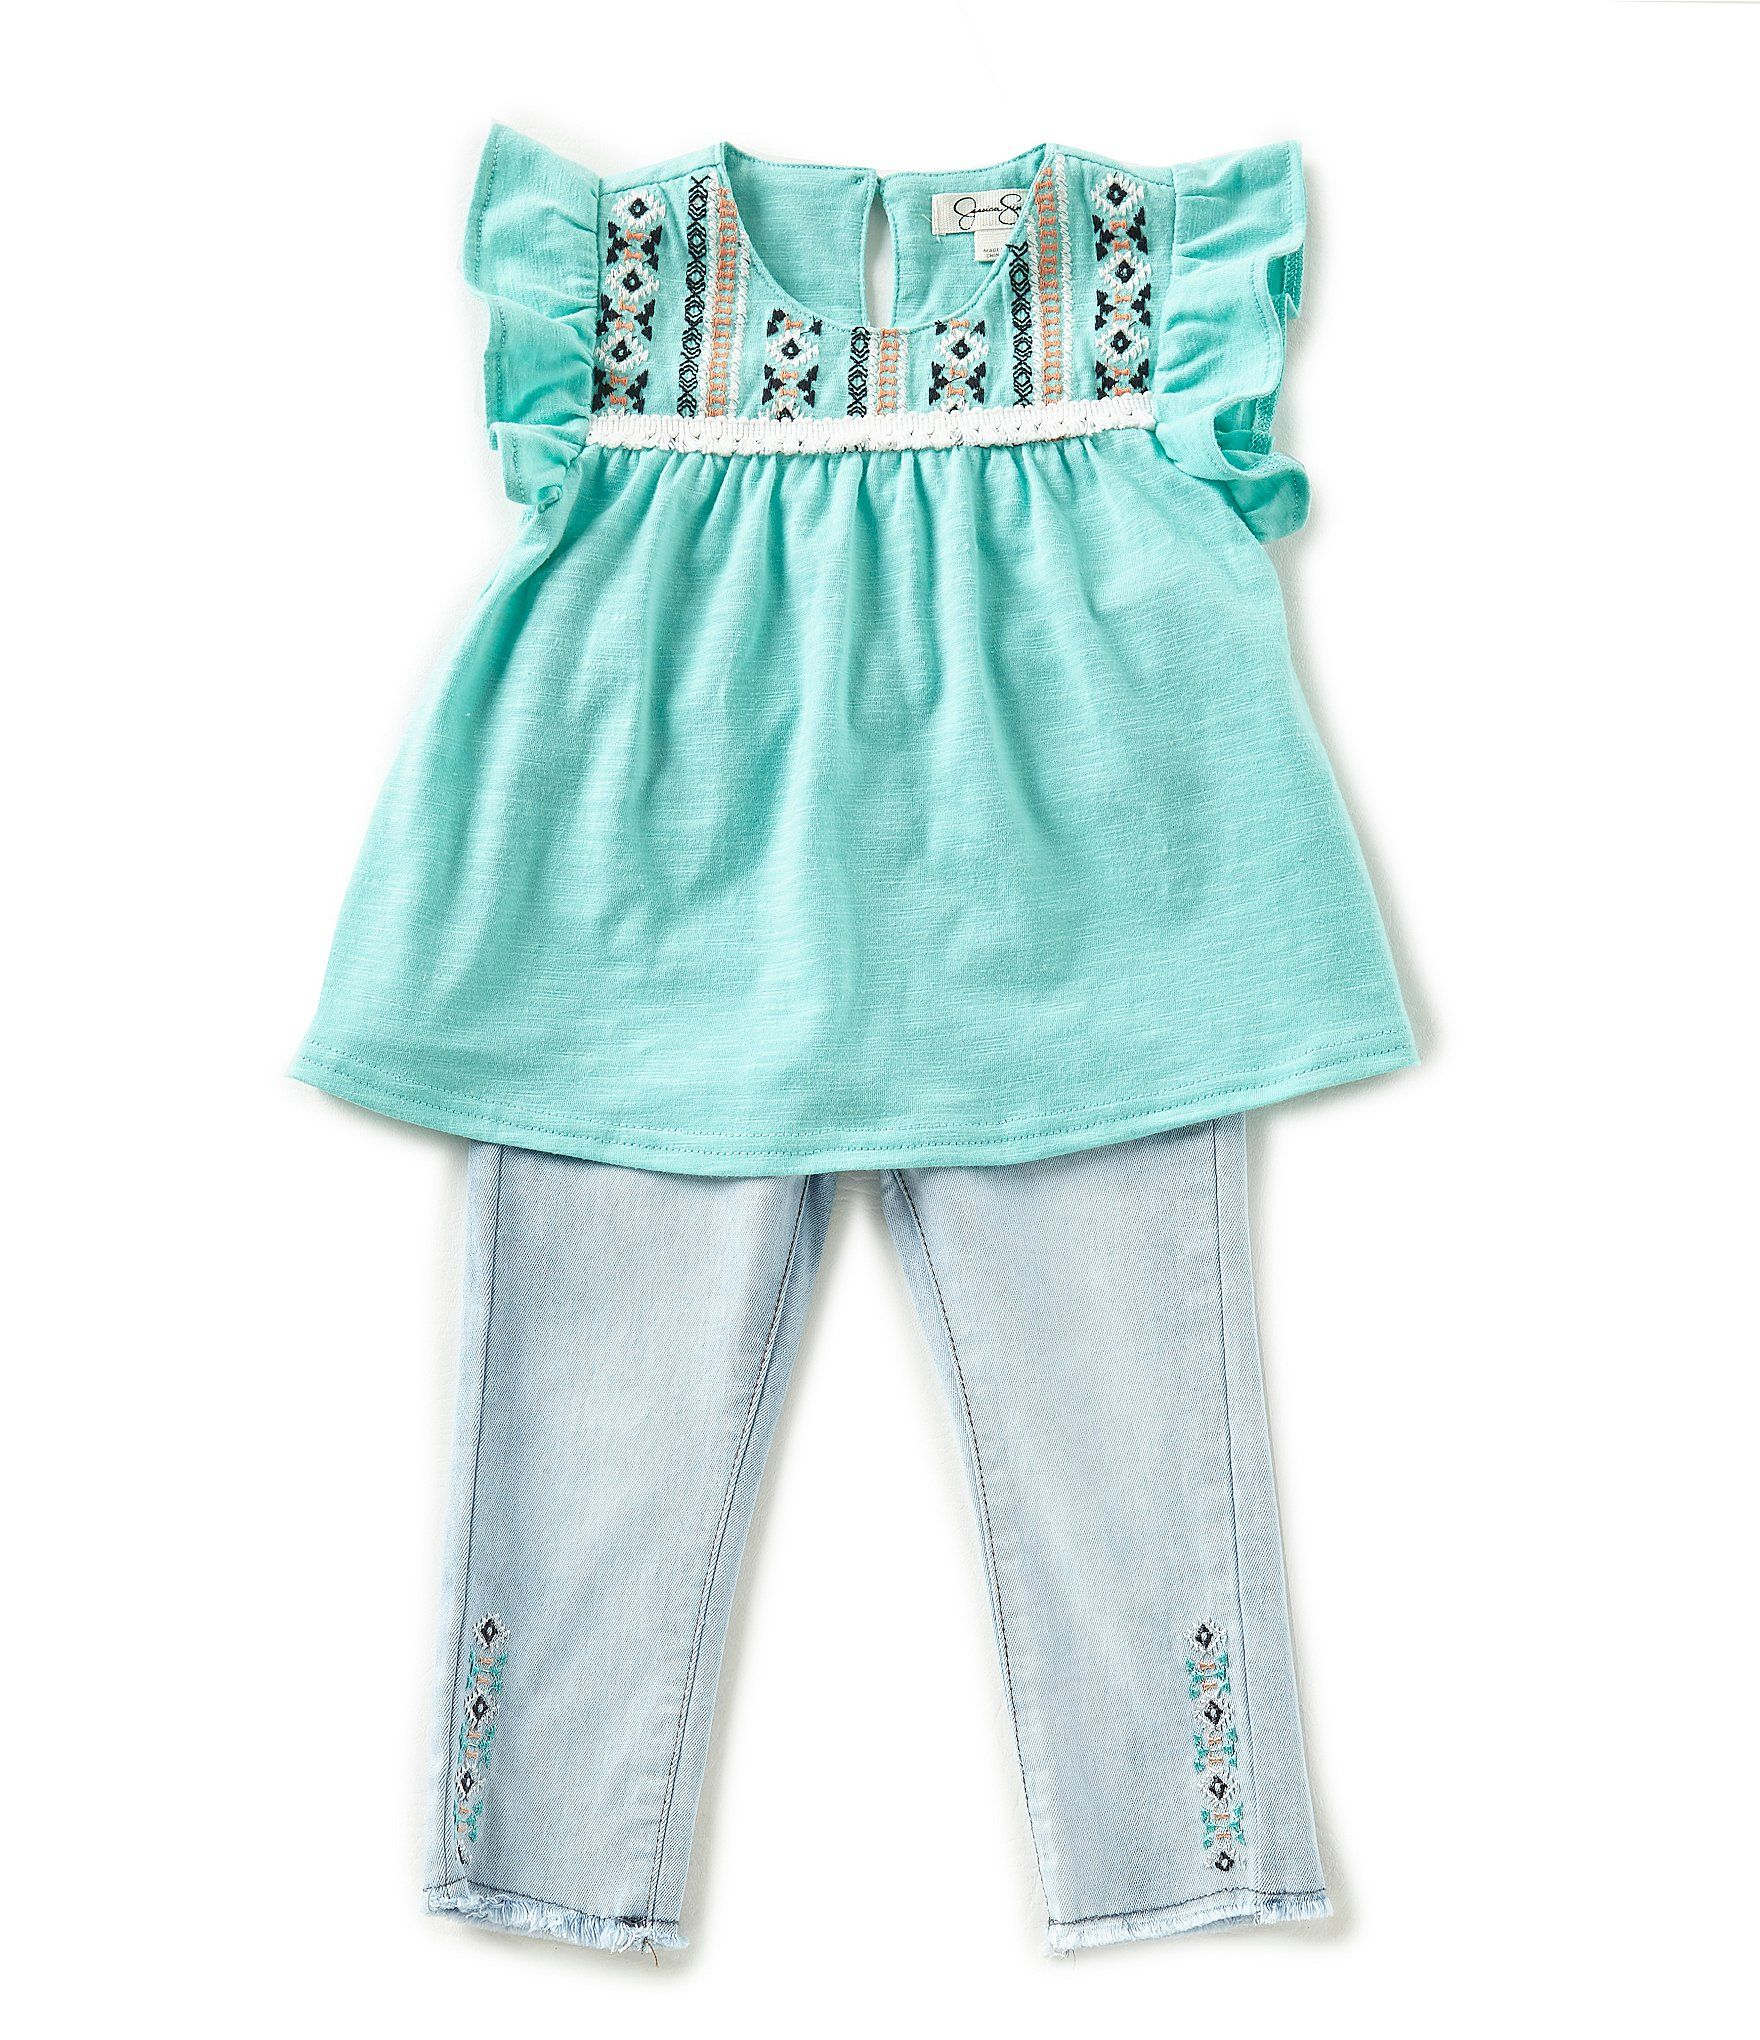 Jessica Simpson Baby Girls 12 24 Months Embroidered Top & Denim